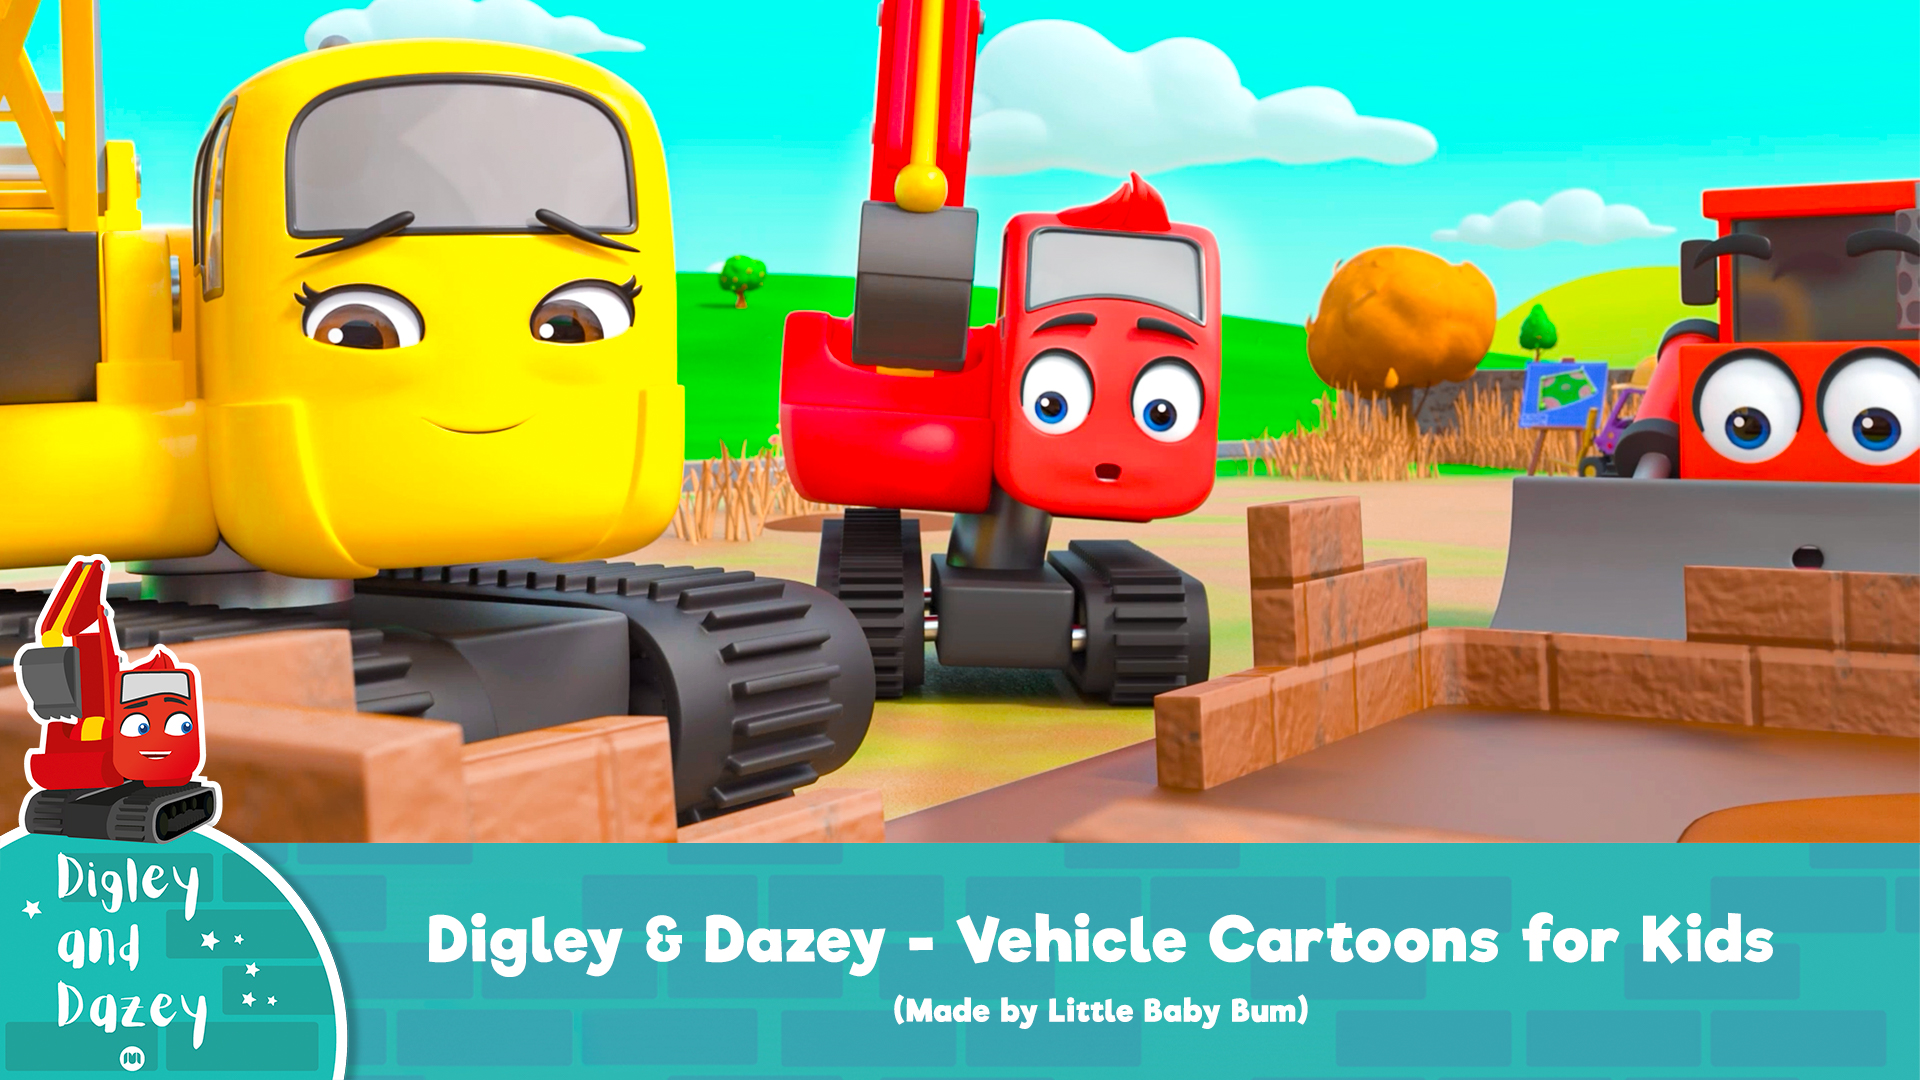 Digley & Dazey - Vehicle Cartoons for Kids (Made by Little Baby Bum) on Amazon Prime Video UK